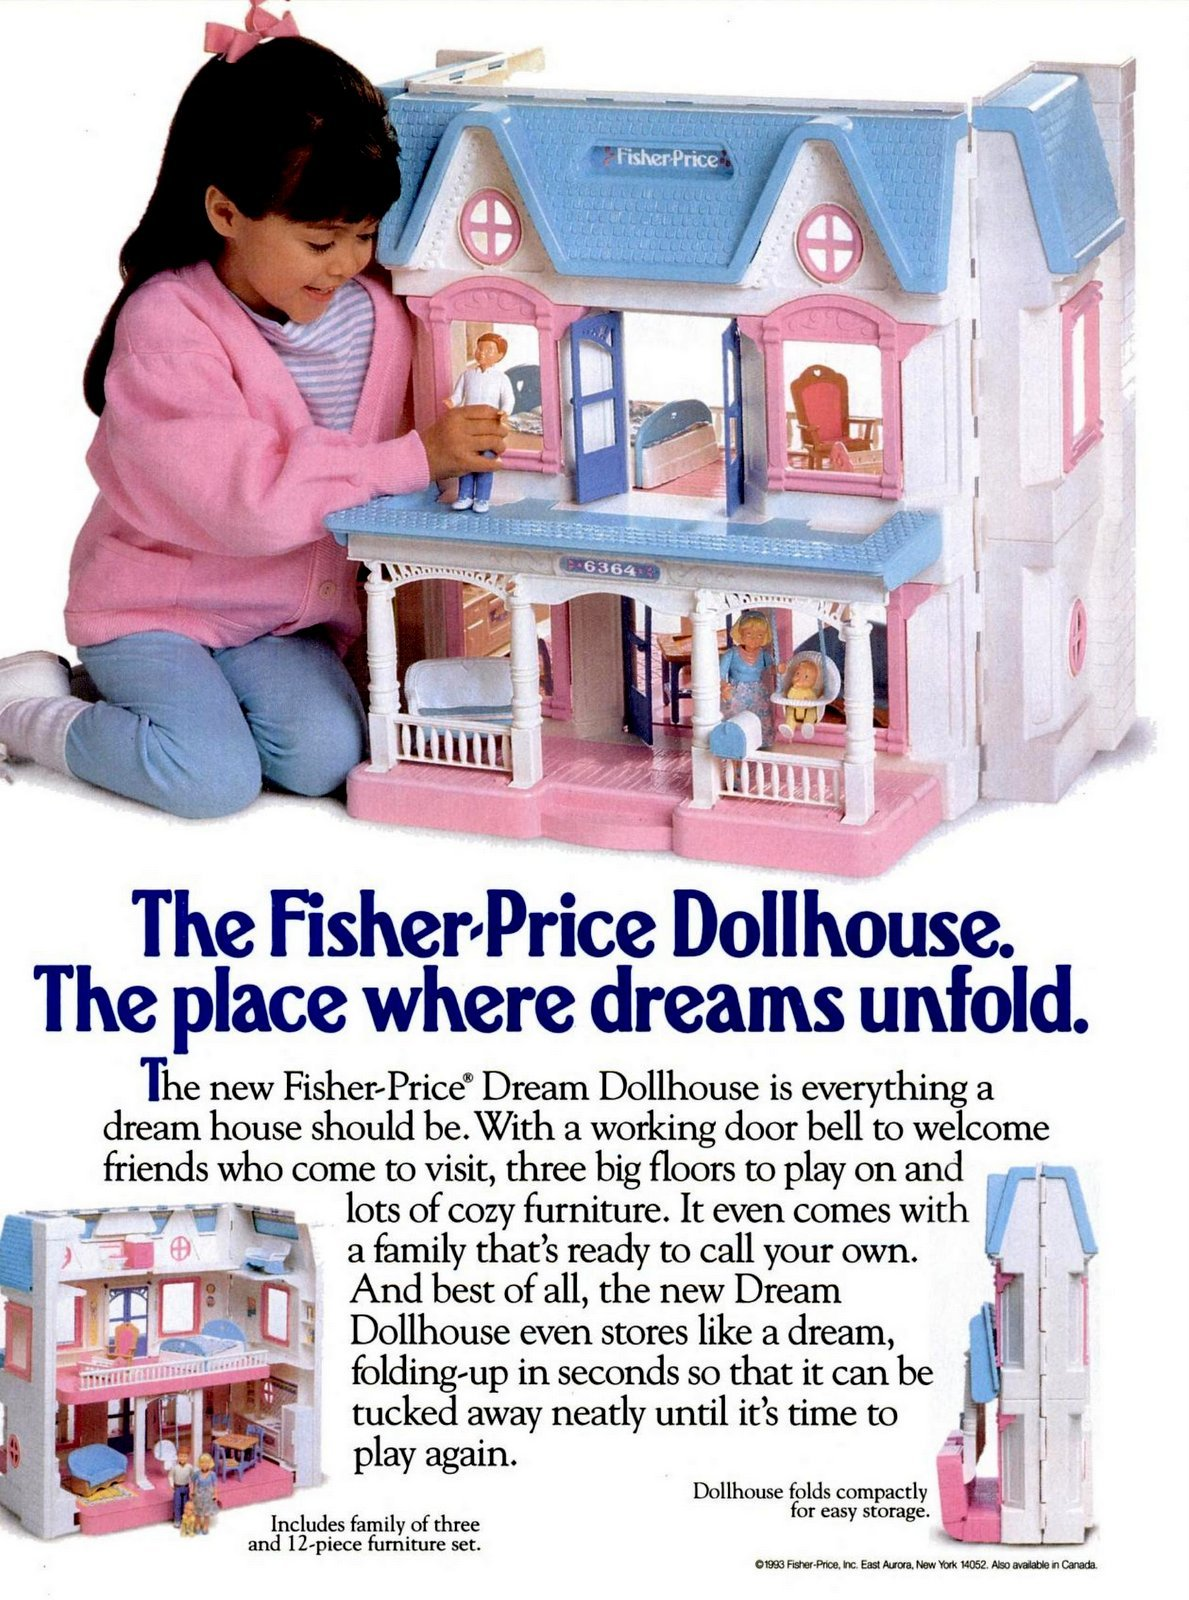 The Fisher-Price Dream Dollhouse The place where dreams unfold (1993)